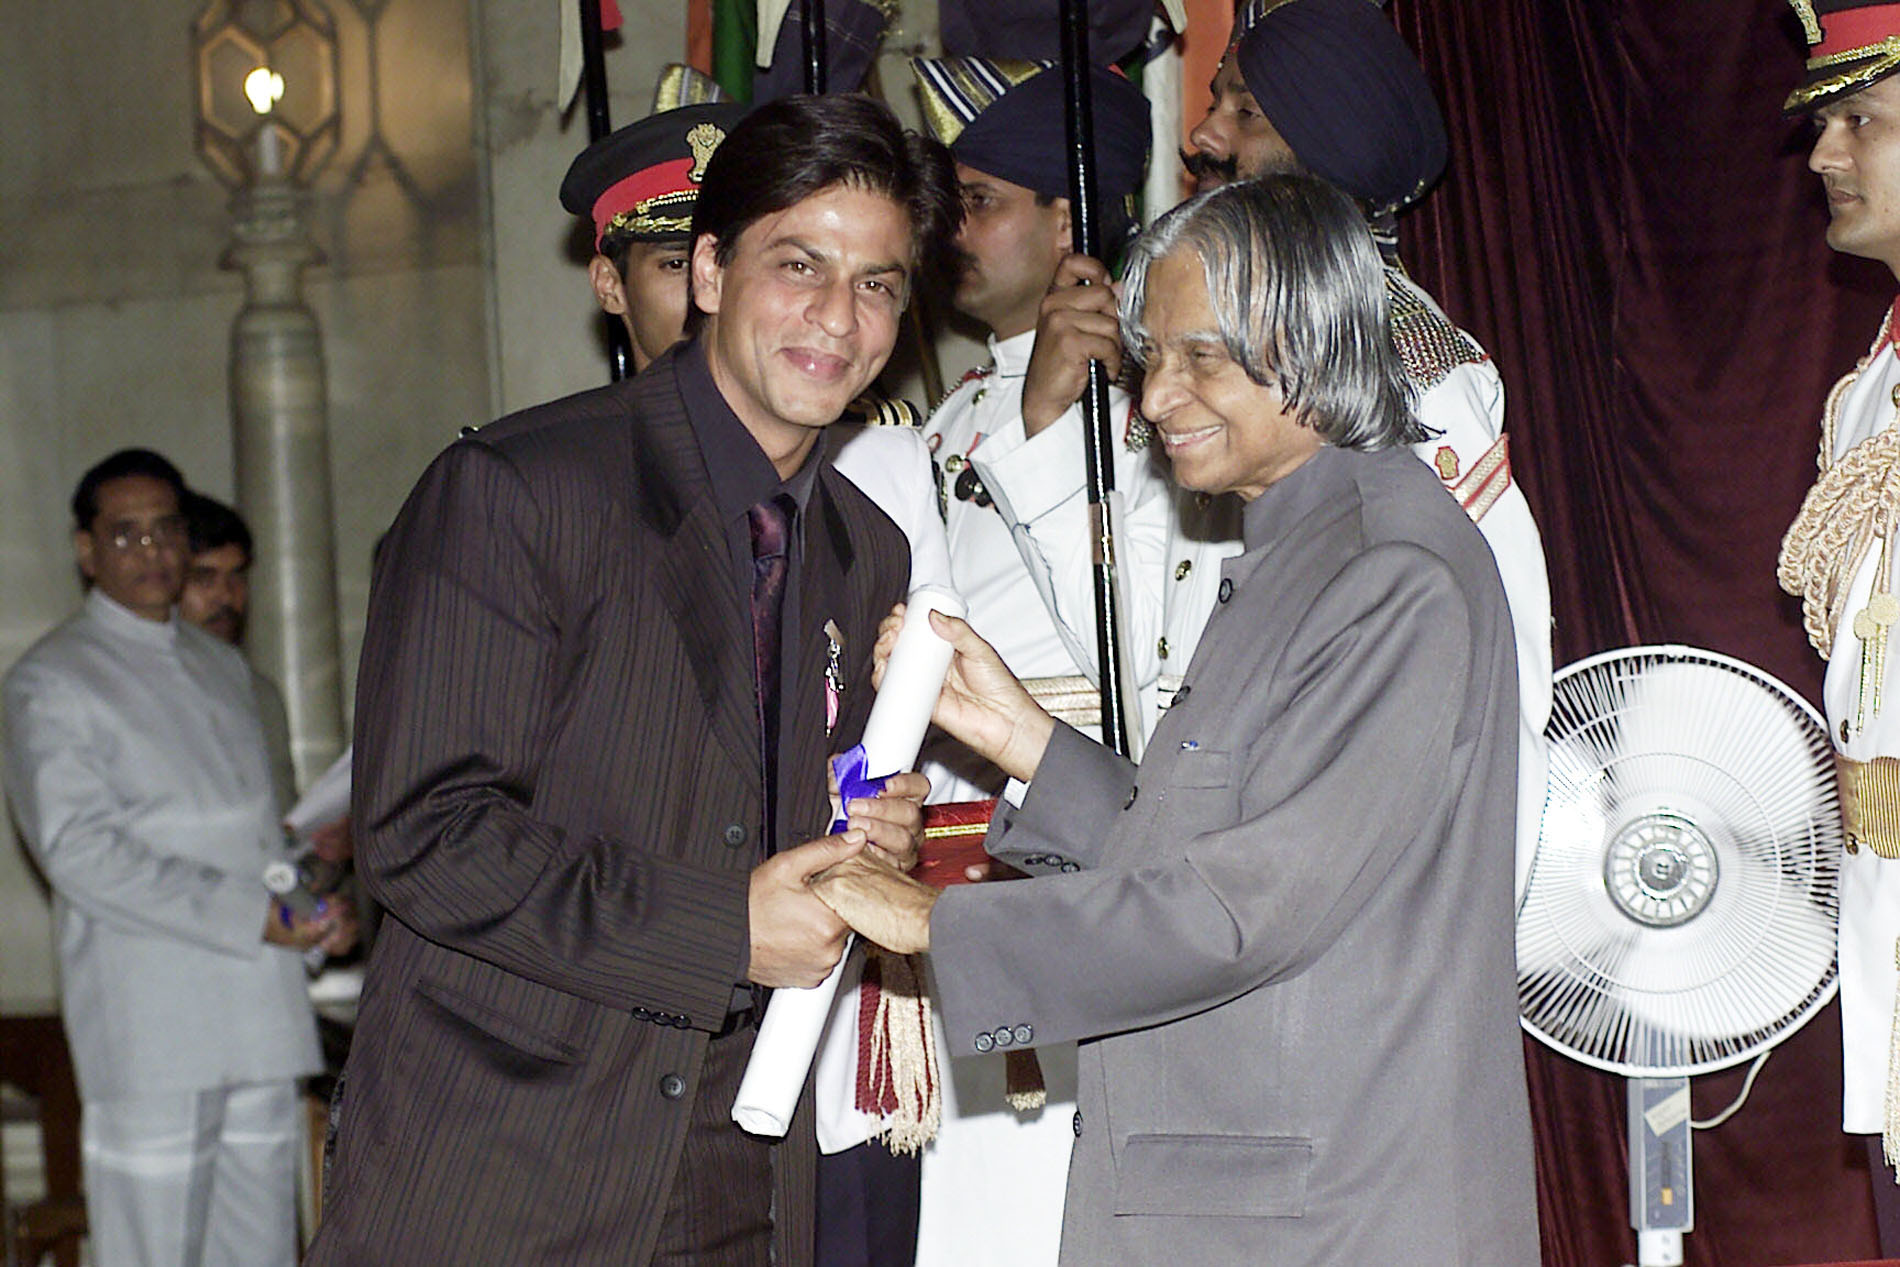 The renowned actor Shri Shah Rukh Khan receives the Padma Shri award from the President Dr. A.P.J. Abdul Kalam in New Delhi on March 28, 2005.